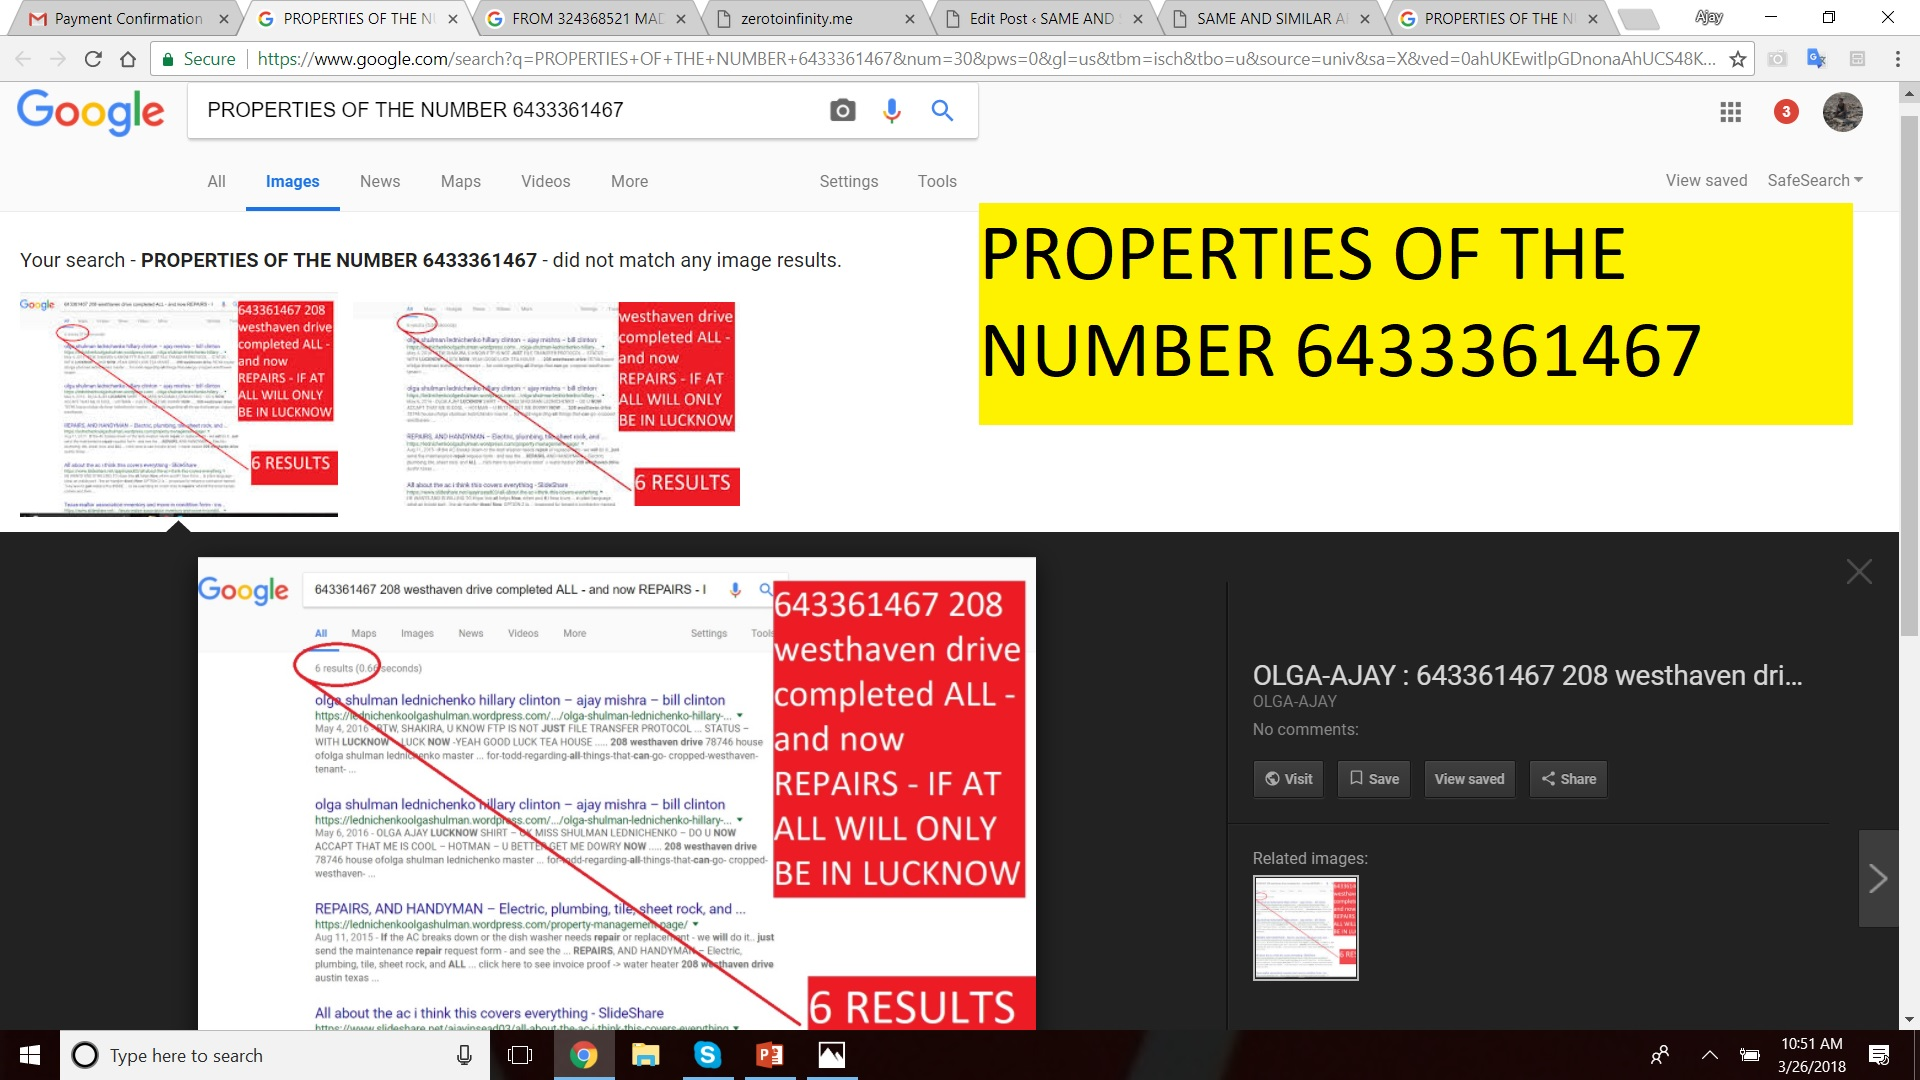 PROPERTIES OF THE NUMBER 6433361467 - GOOGLE IMAGE RESULTS - IF U ARE NOT BLIND - HOPE I WONT HAVE TO SPILL MORE INK